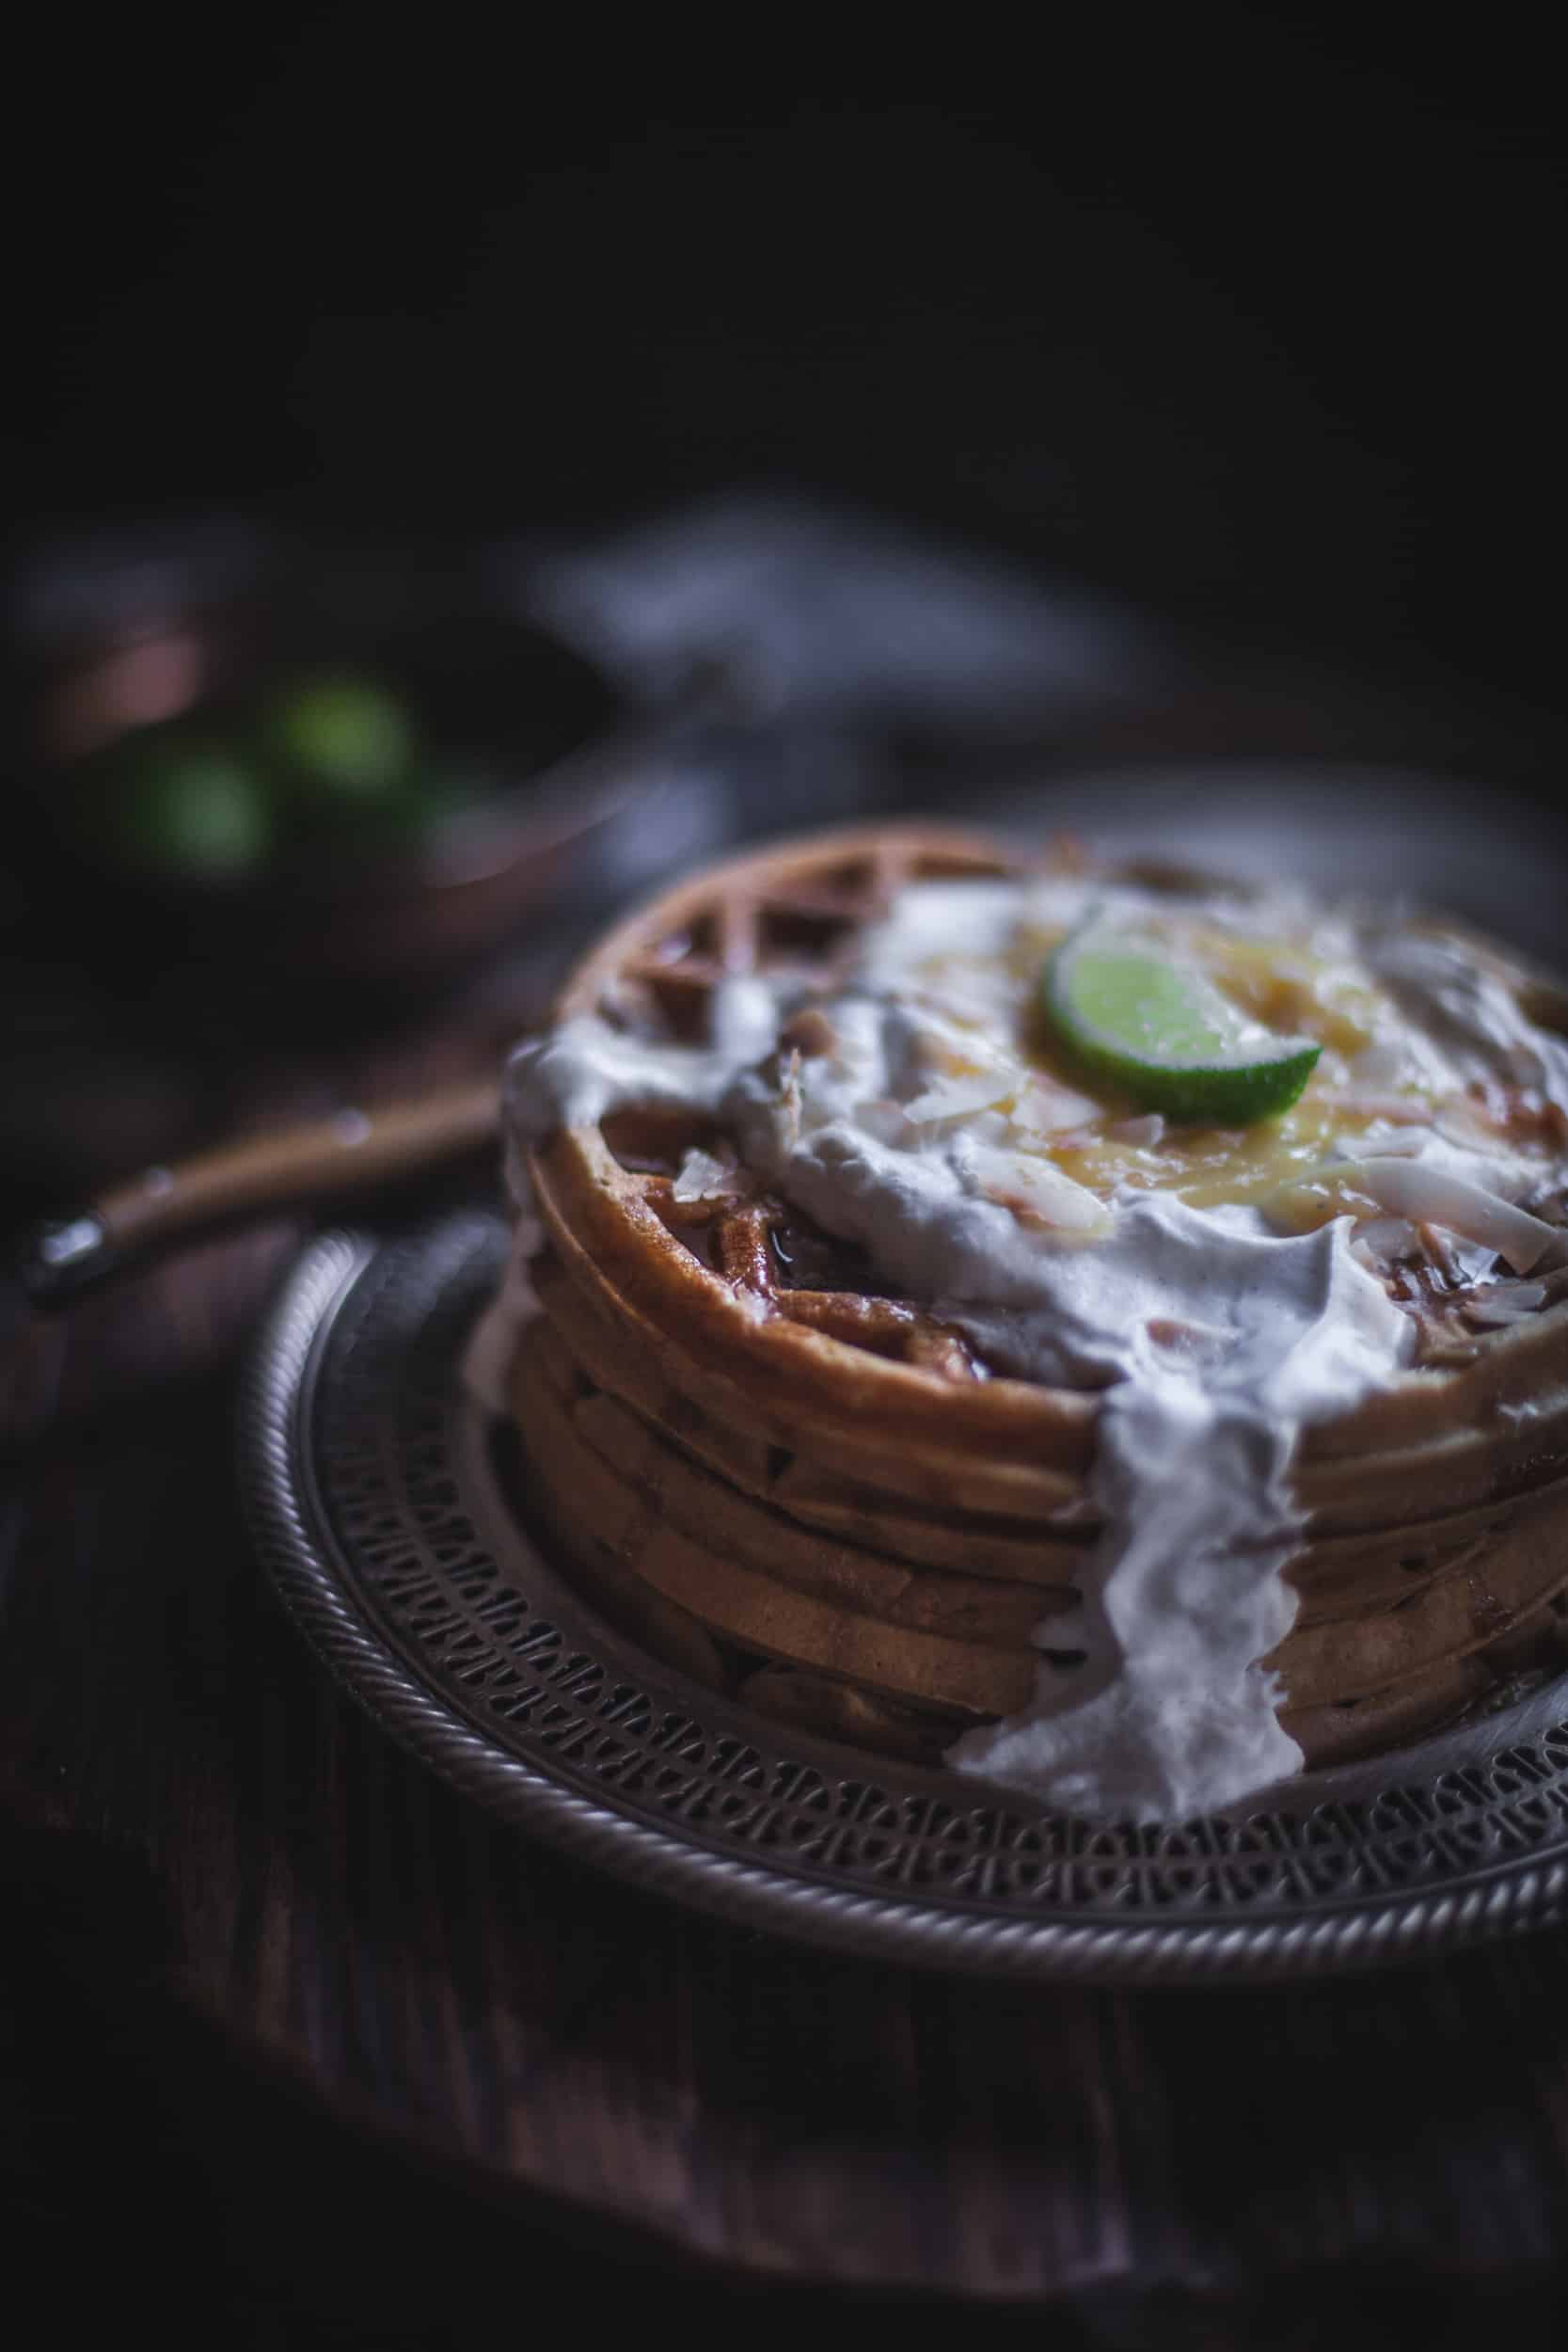 Coconut Waffles with Lime Curd & Cardamom Whipped Cream by Eva Kosmas Flores